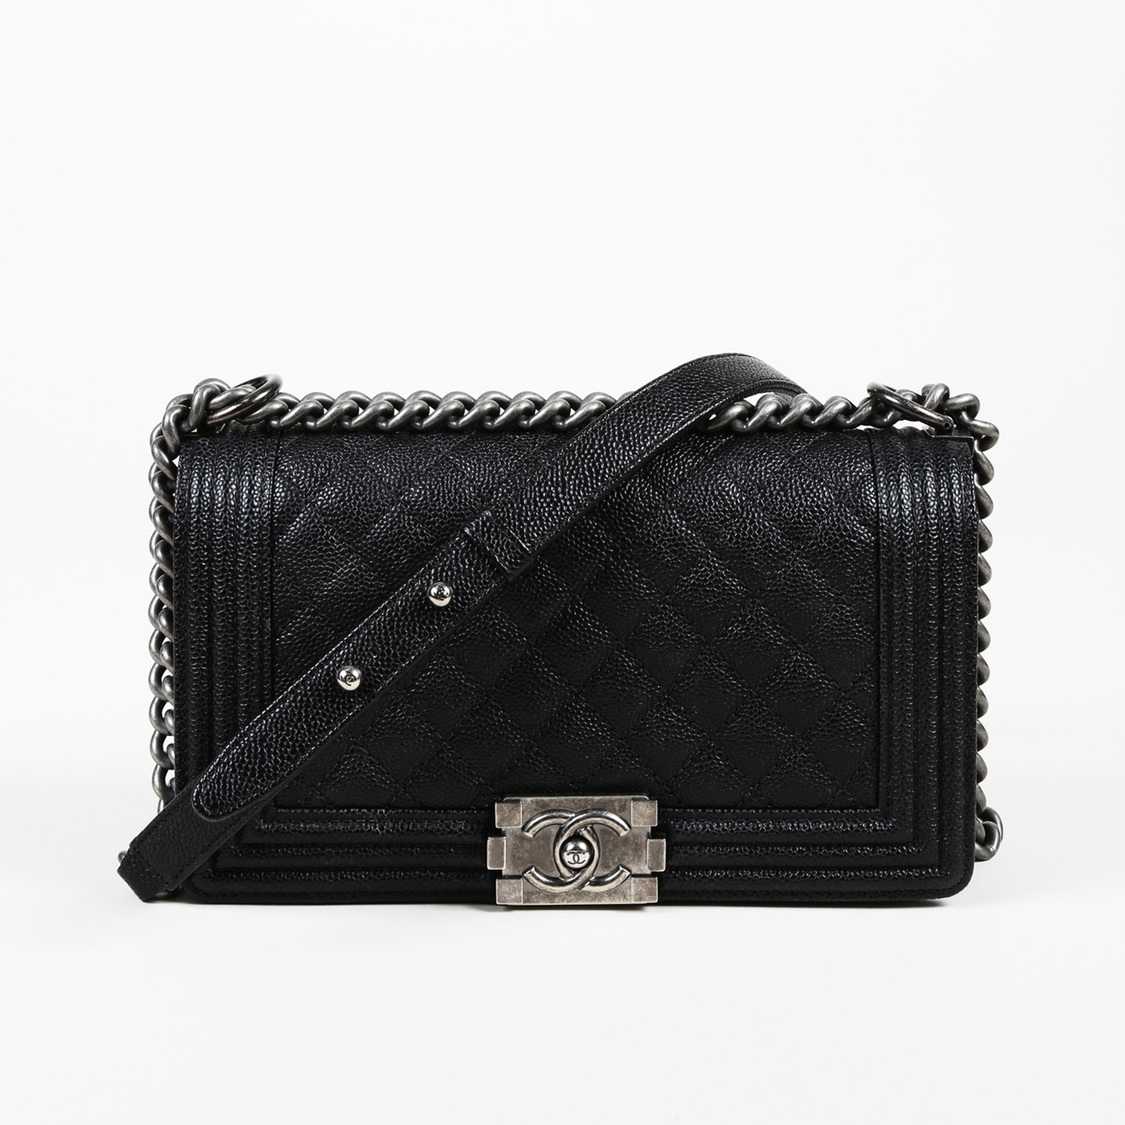 2ab927471e5b Details about Chanel Old Medium Boy Quilted Caviar Leather Crossbody Bag